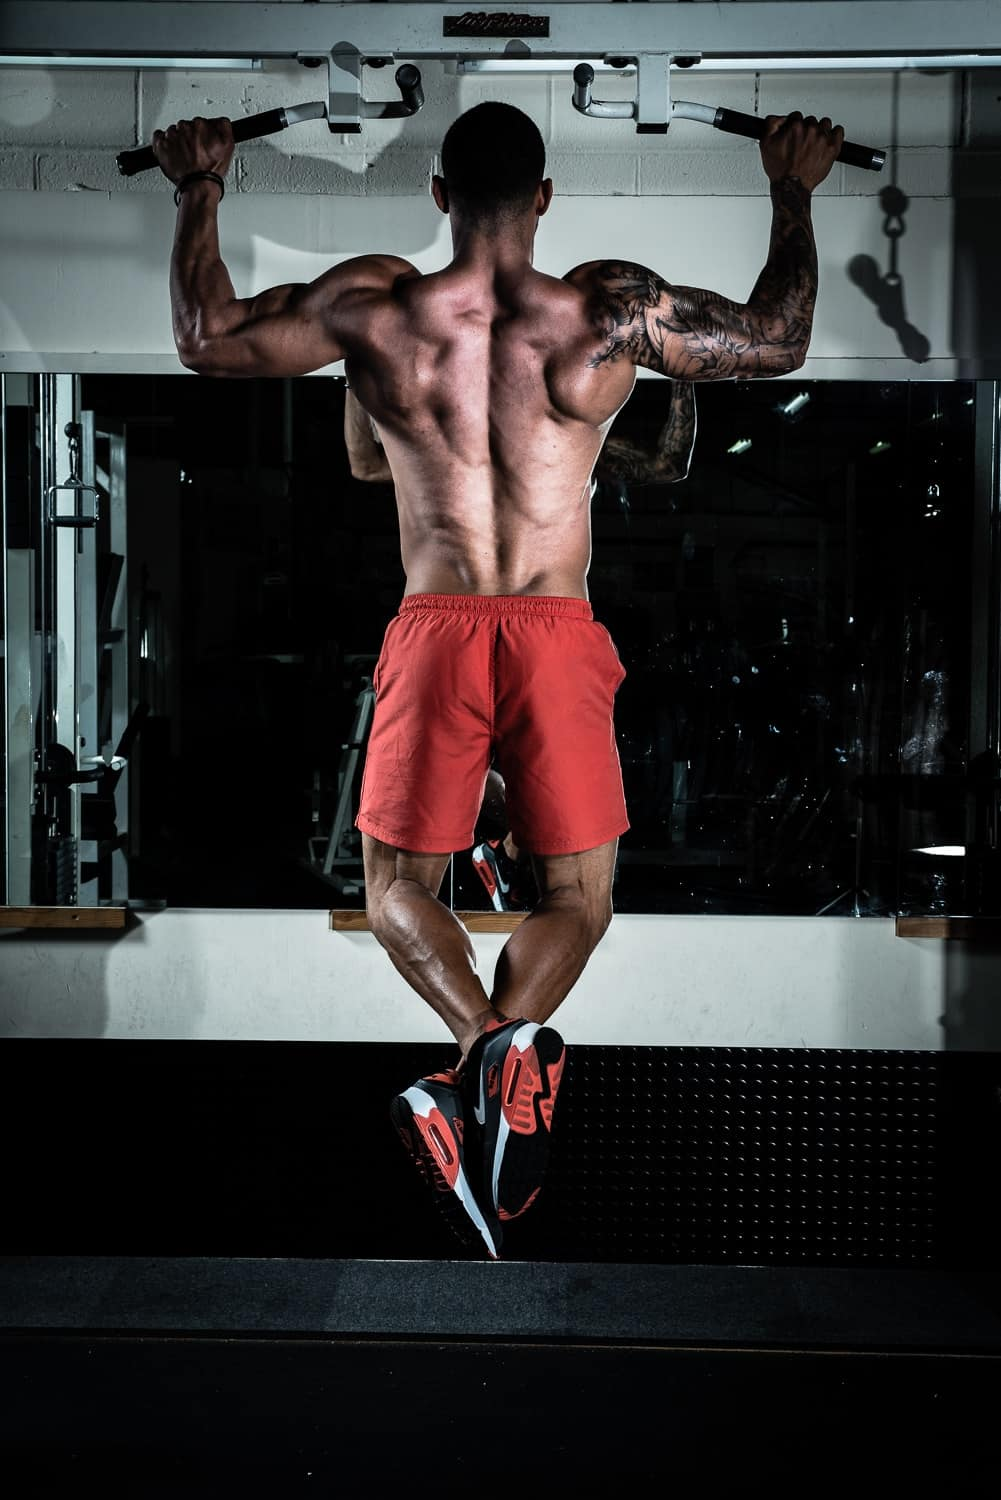 Fitness Photography 2014 - Pull Up